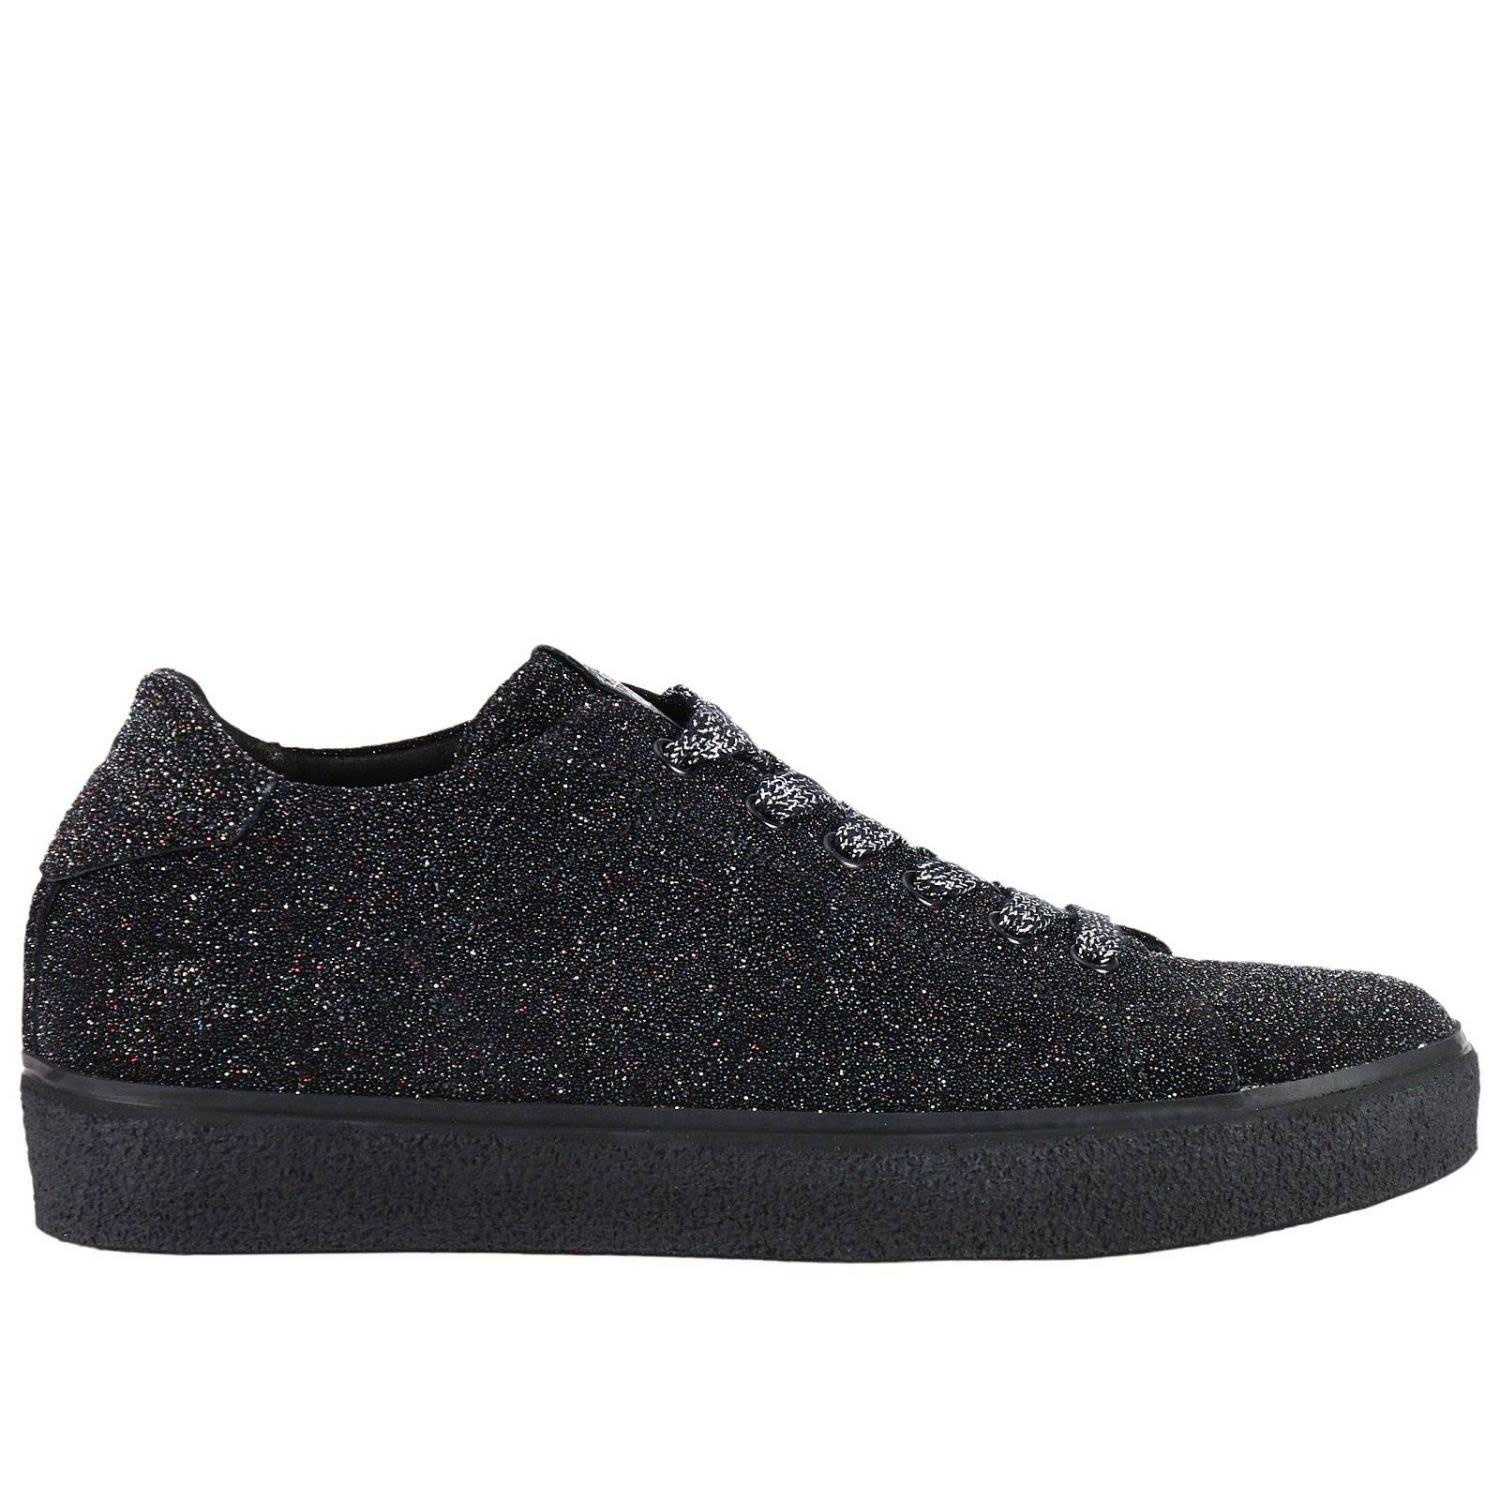 Leather Crown Sneakers Shoes Women  In Black